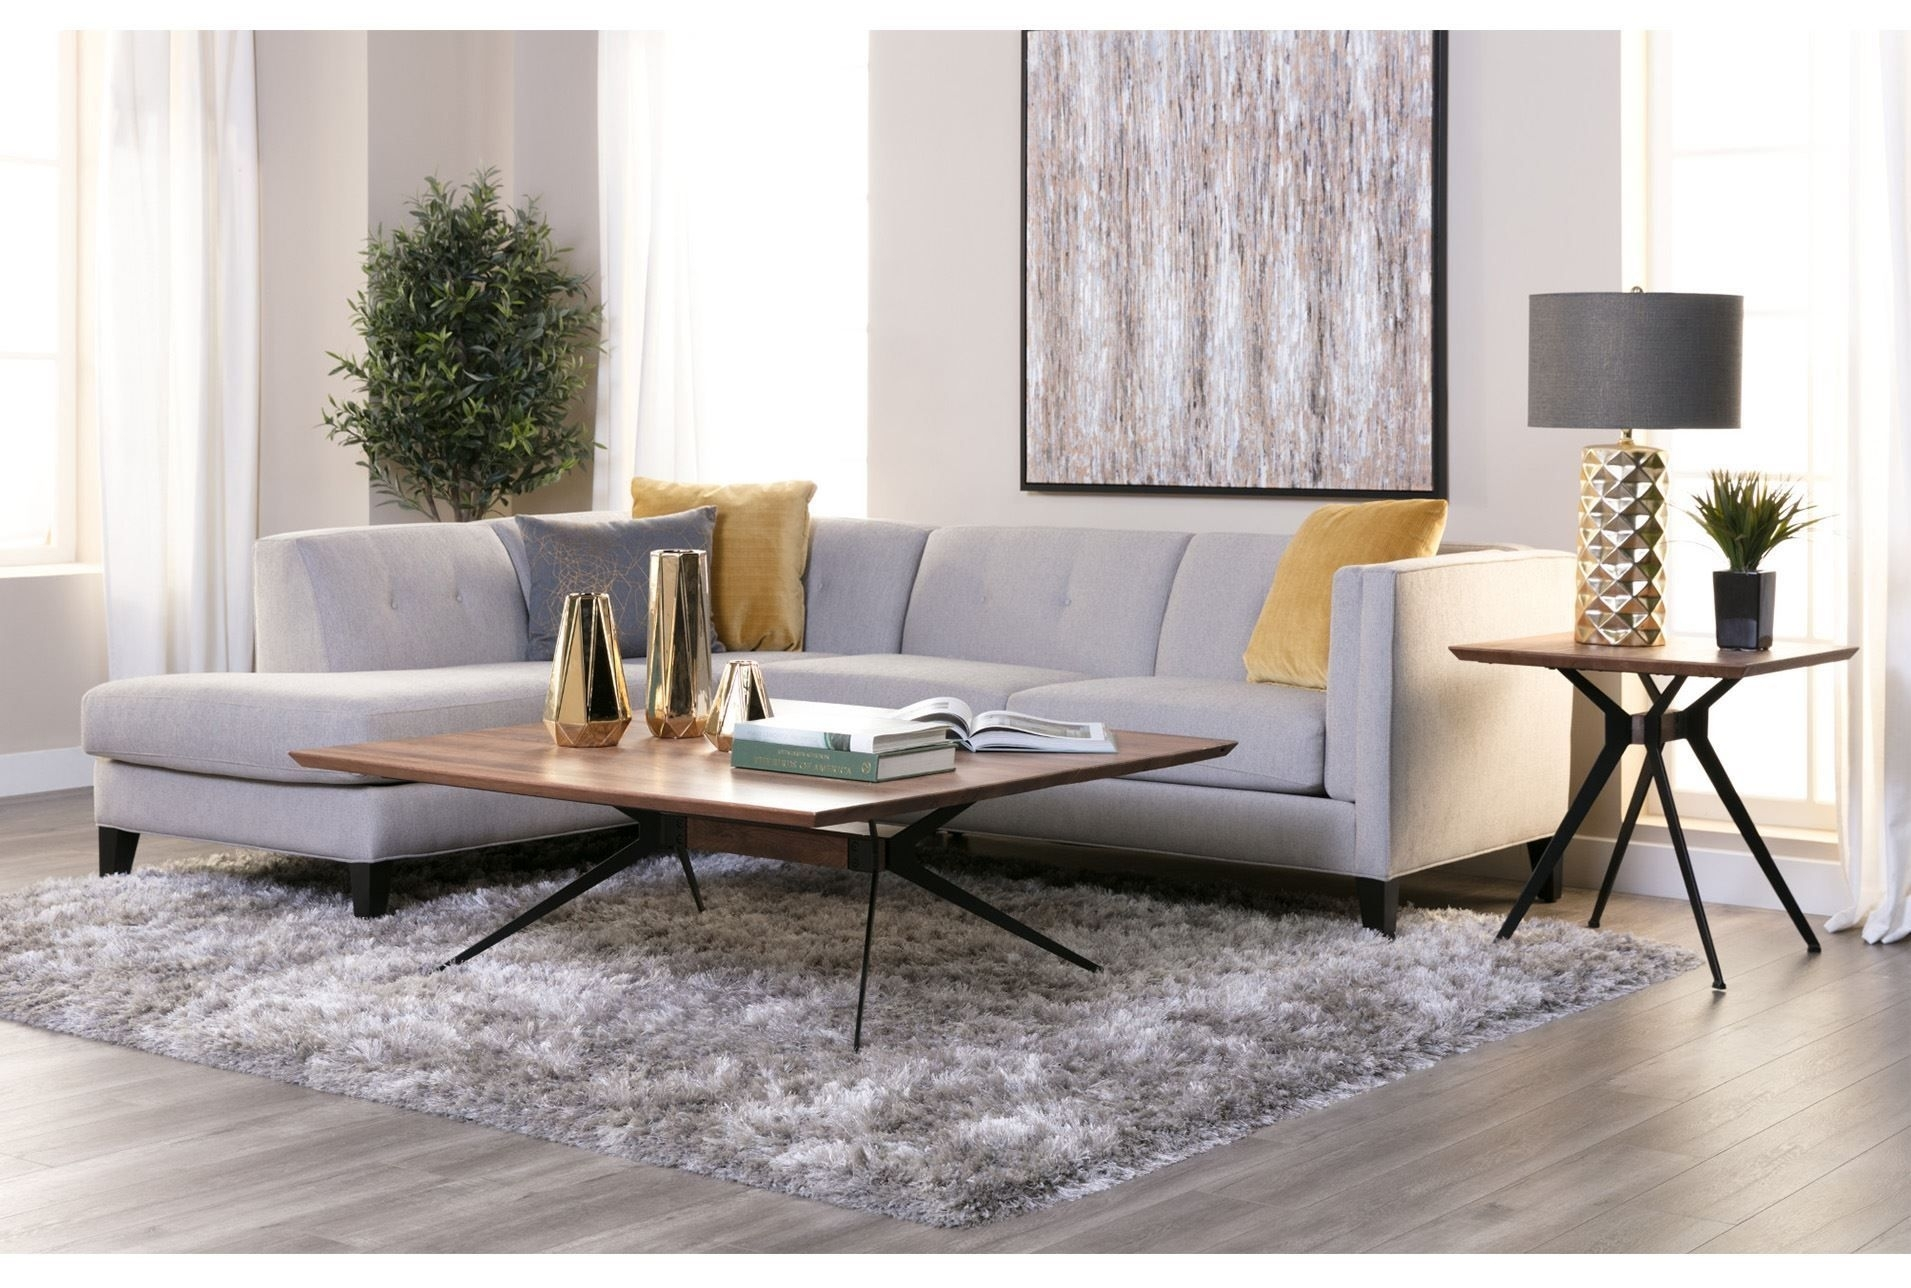 Avery 2 Piece Sectional W/laf Armless Chaise | Home Decor/interior Intended For Aidan 4 Piece Sectionals (Image 10 of 25)